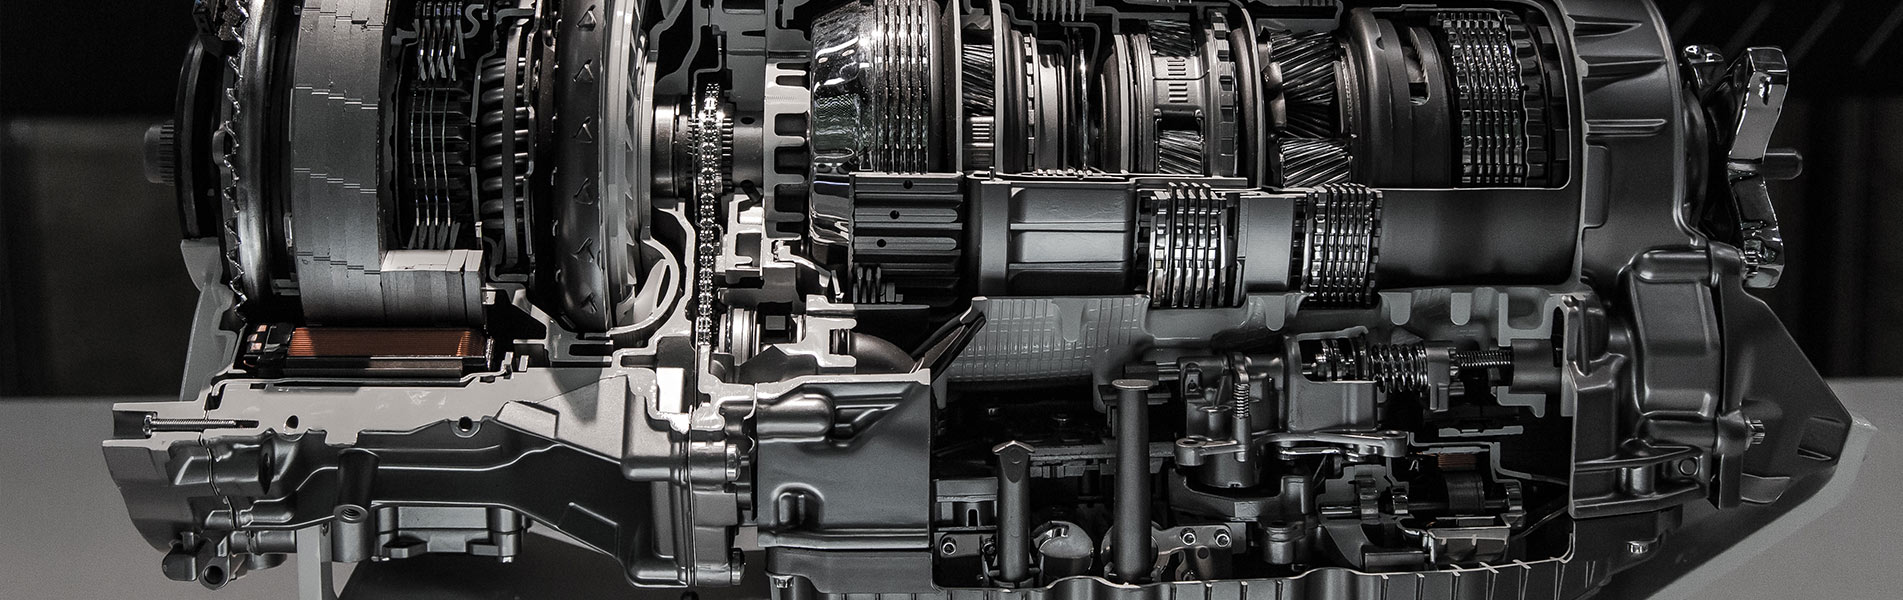 Transmission Repair in Stewartville, MN | Differential Repair